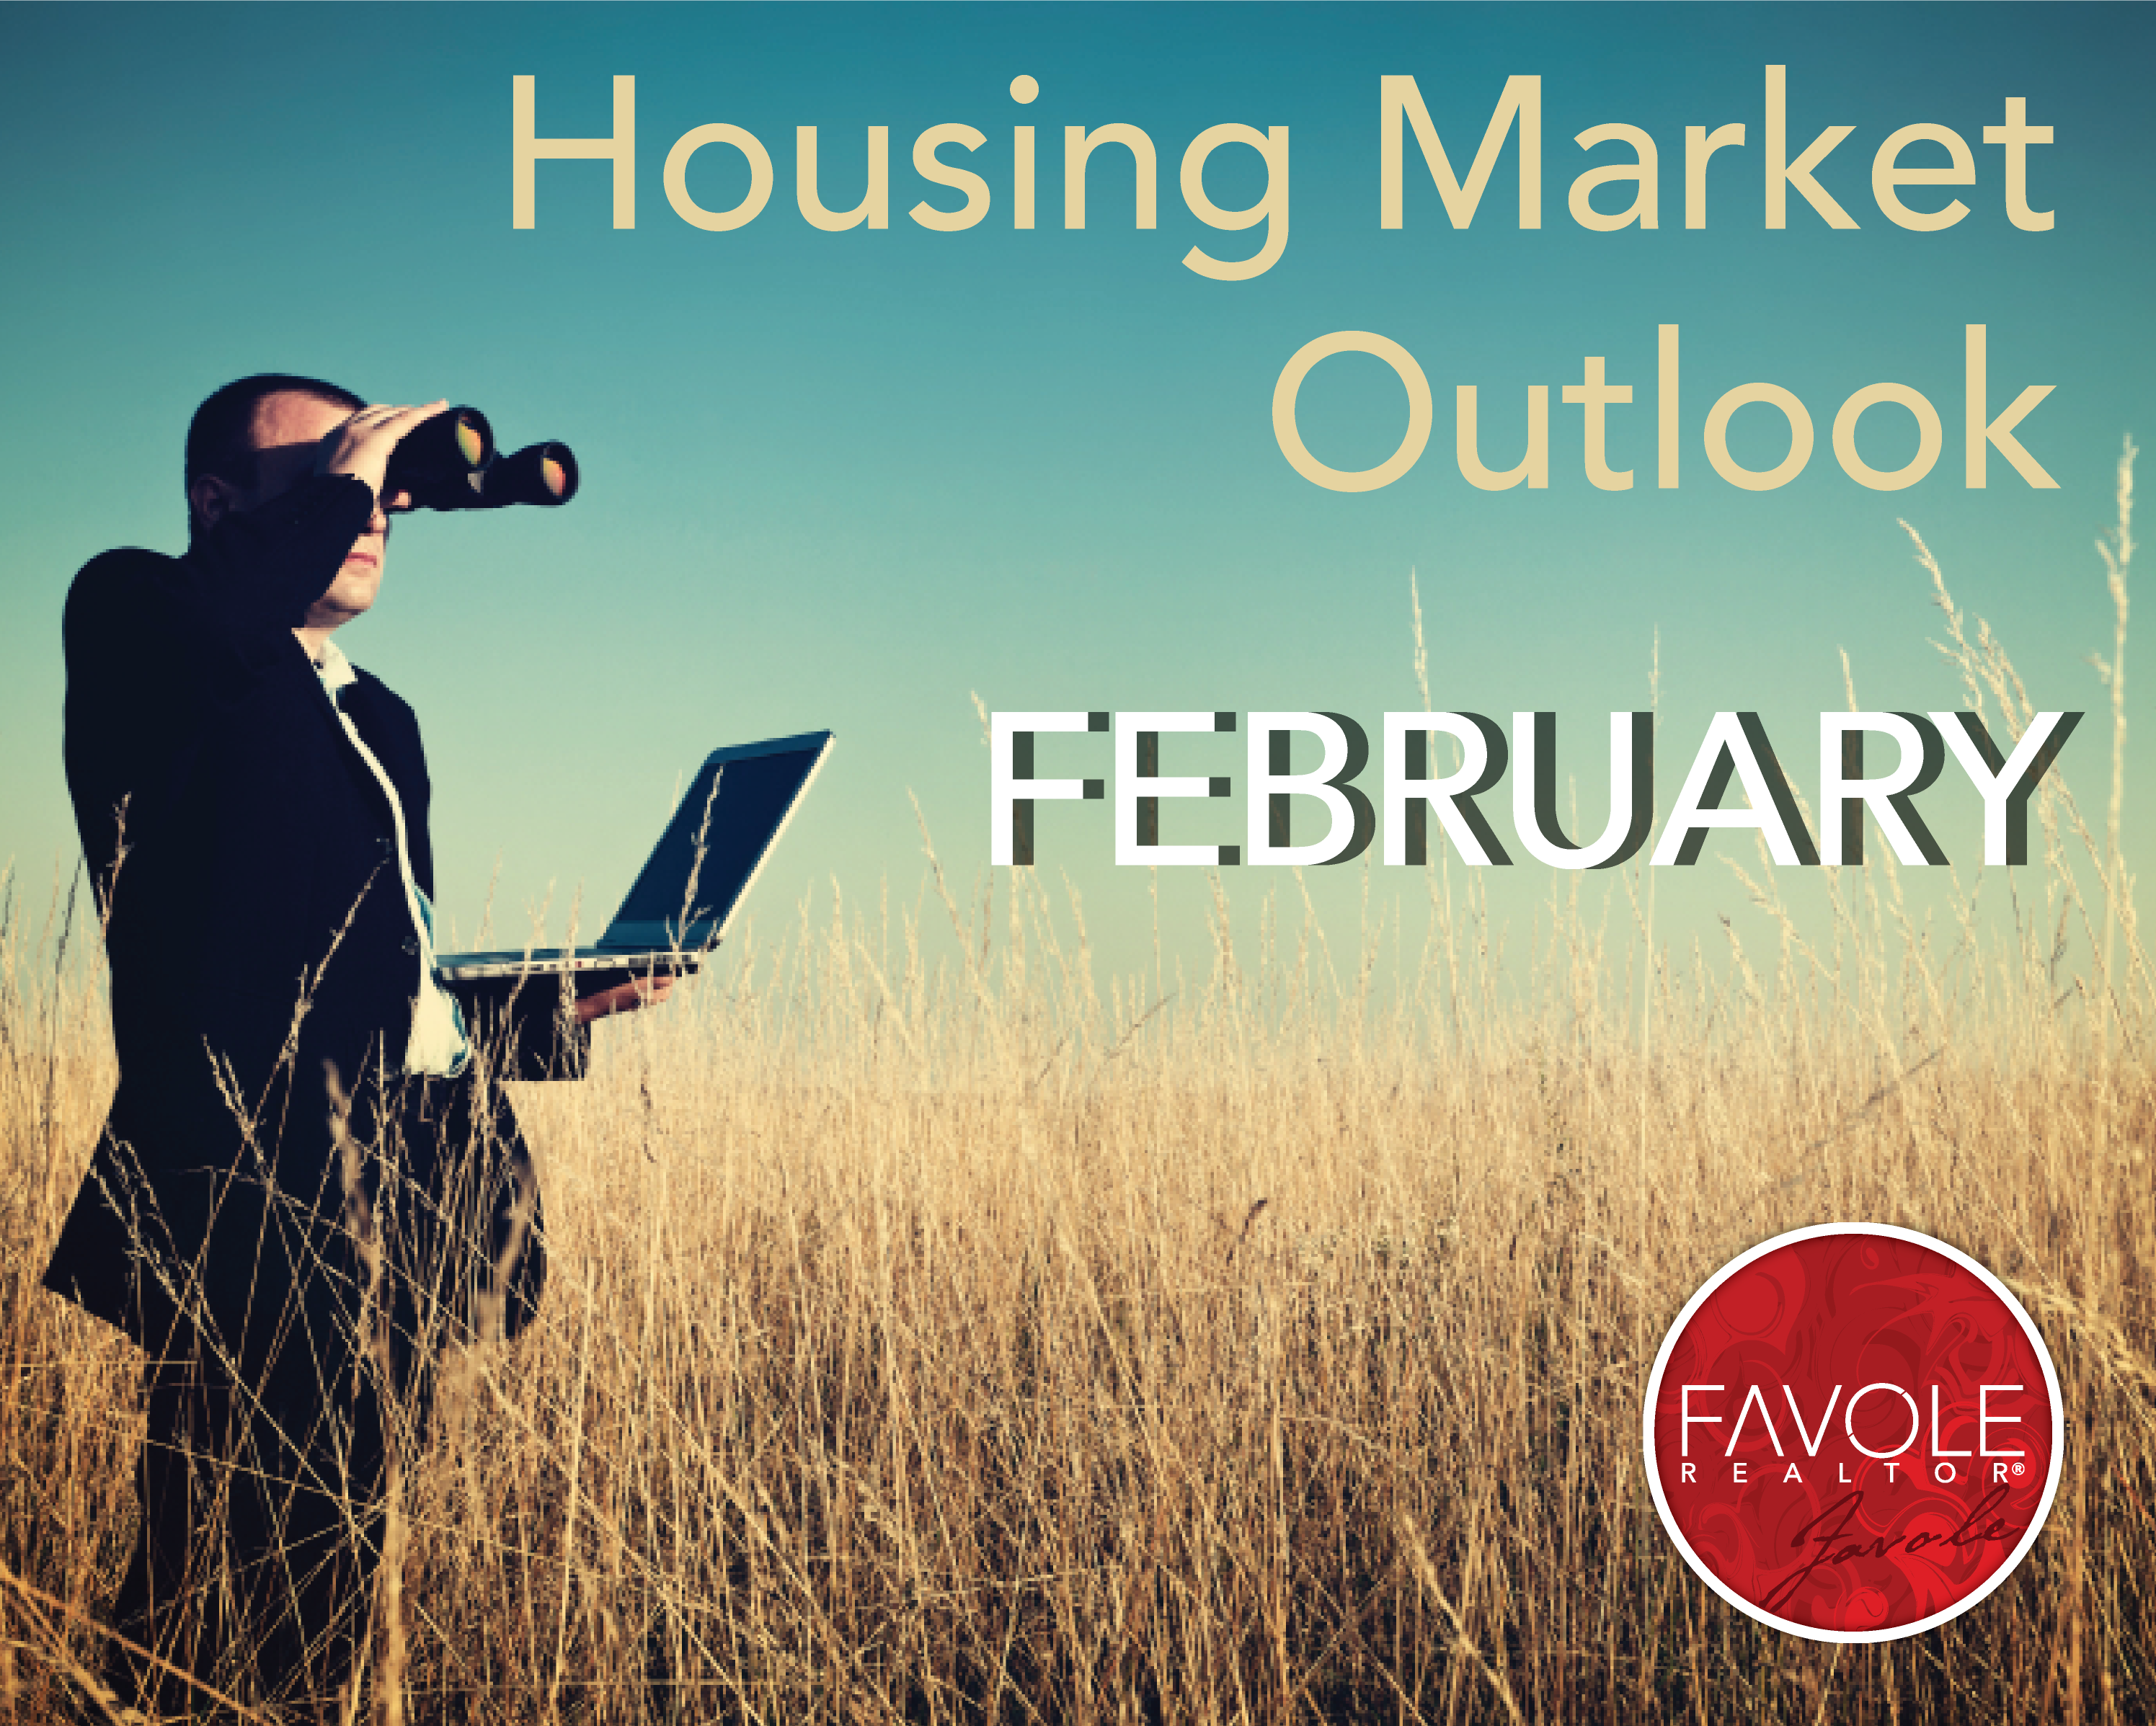 Economic and Housing Market Outlook - February